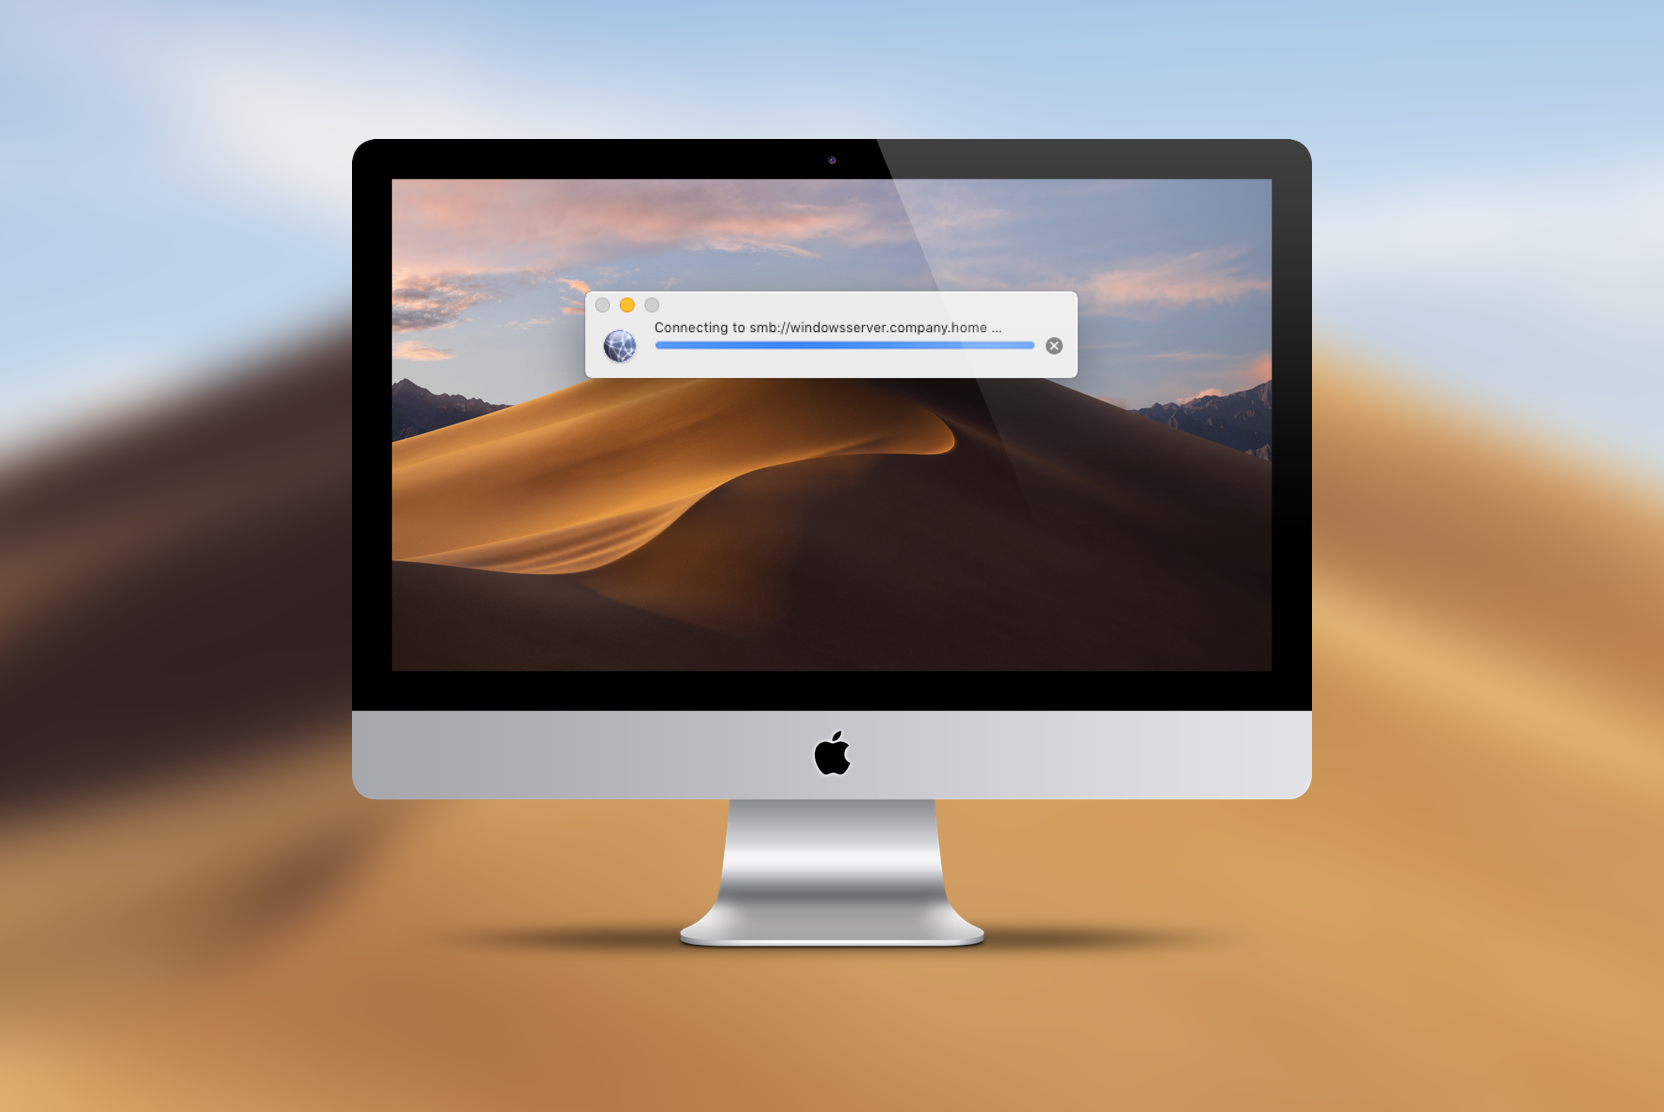 Connecting an SMB fileshare in macOS Mojave is not working